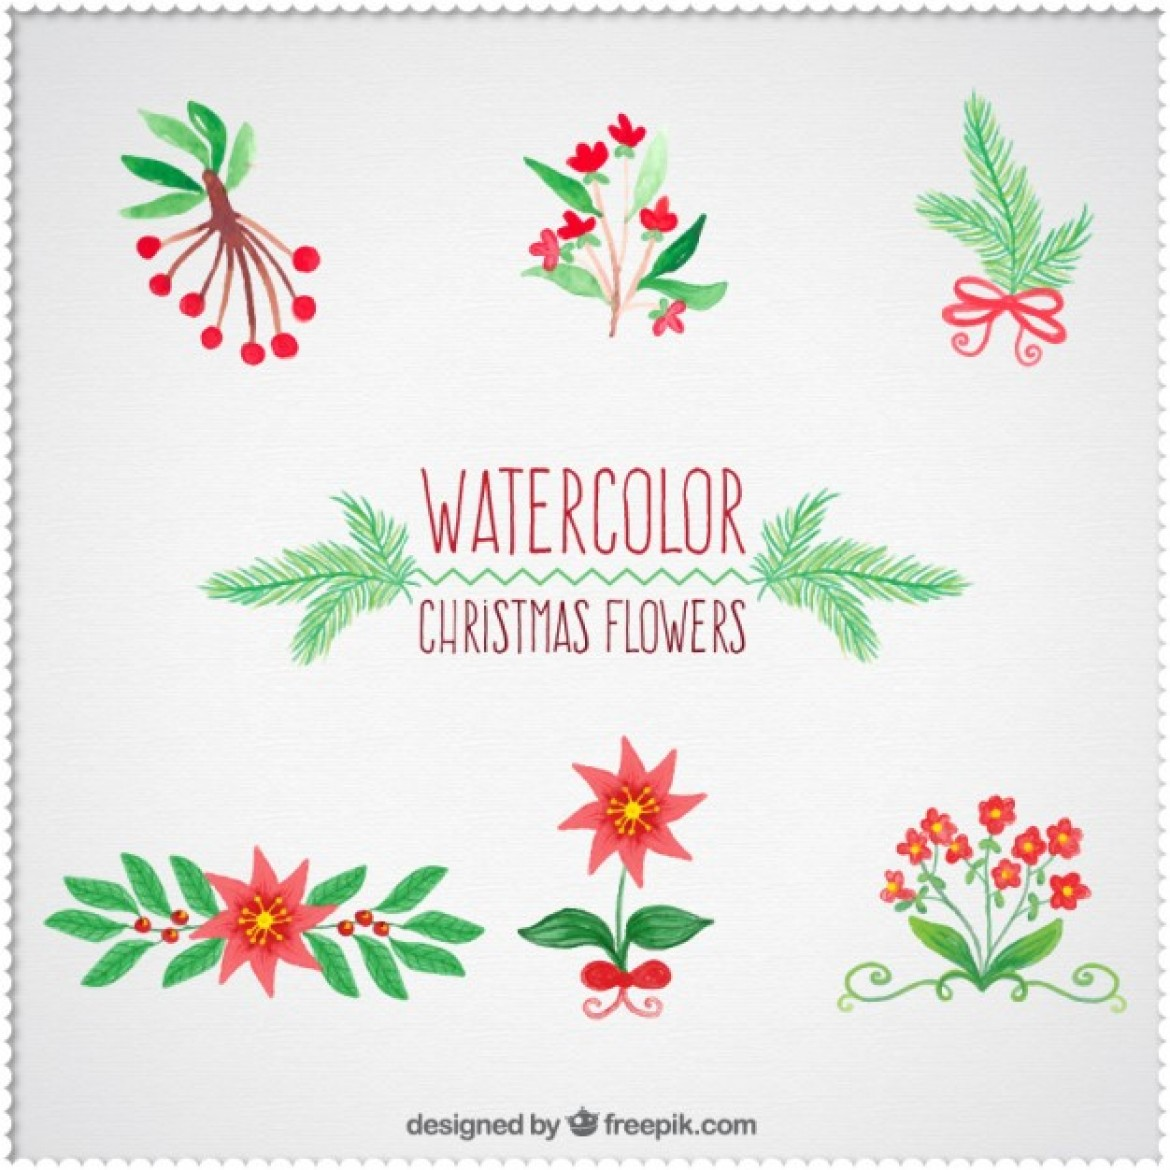 Free pictures of christmas flowers clipart royalty free download Free vector Watercolor christmas flowers collection #34457 | My ... clipart royalty free download